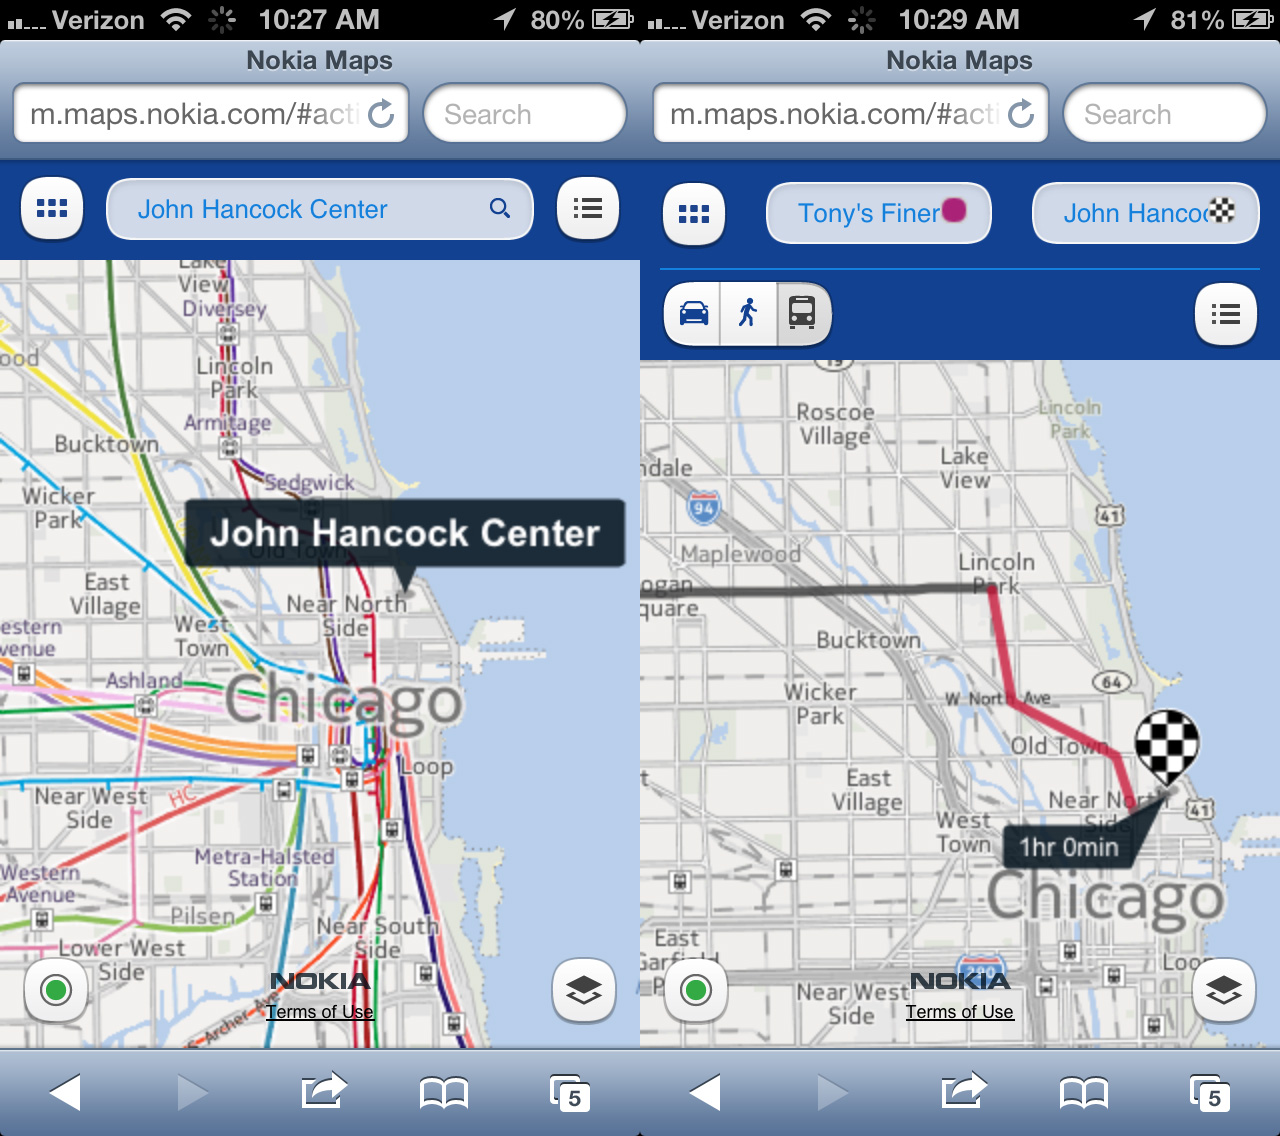 Replacing iOS 6 Maps: Hands-on with MapQuest, Bing, Waze ...